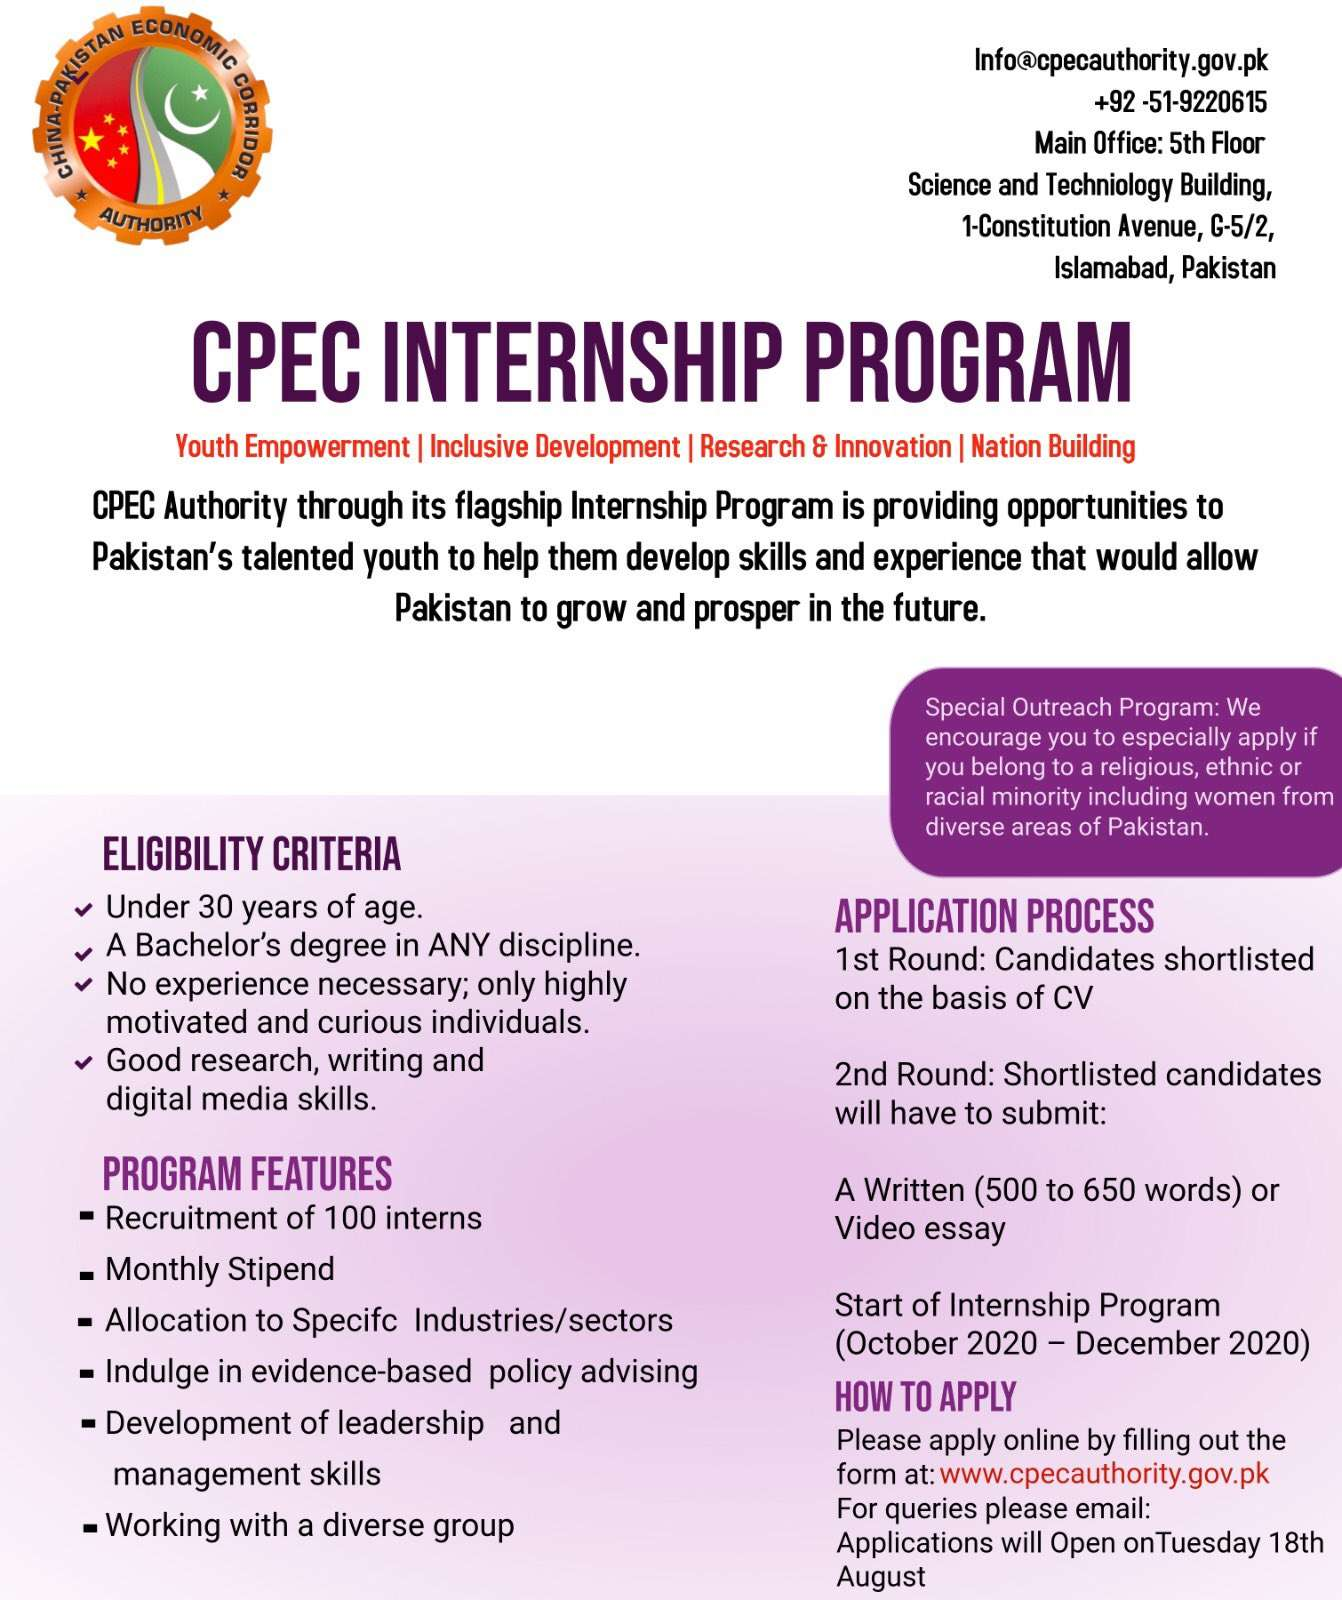 CPEC Authority Internship Program 2020